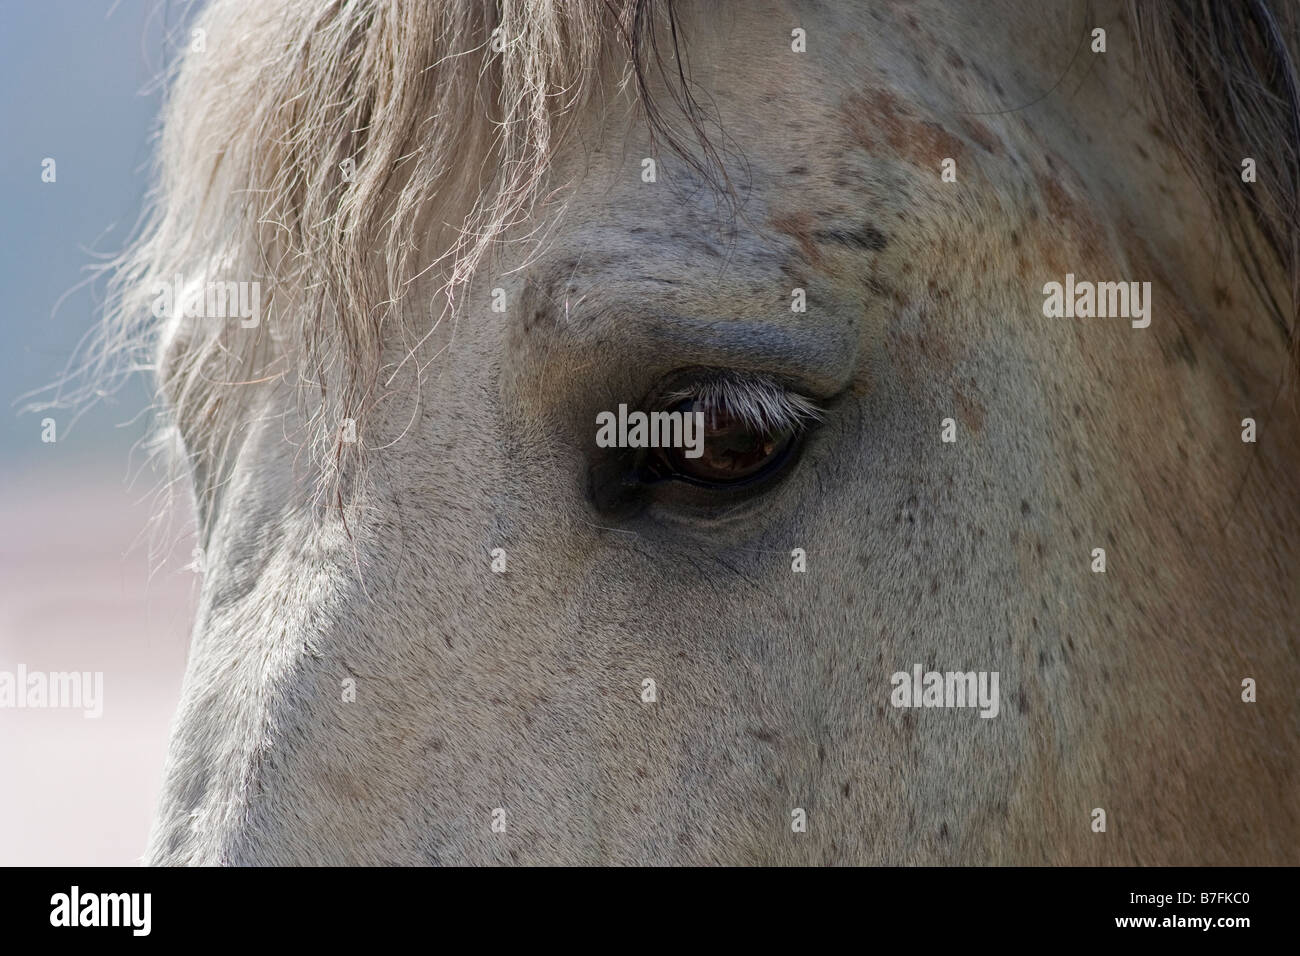 Horse, Andalusian - Stock Image